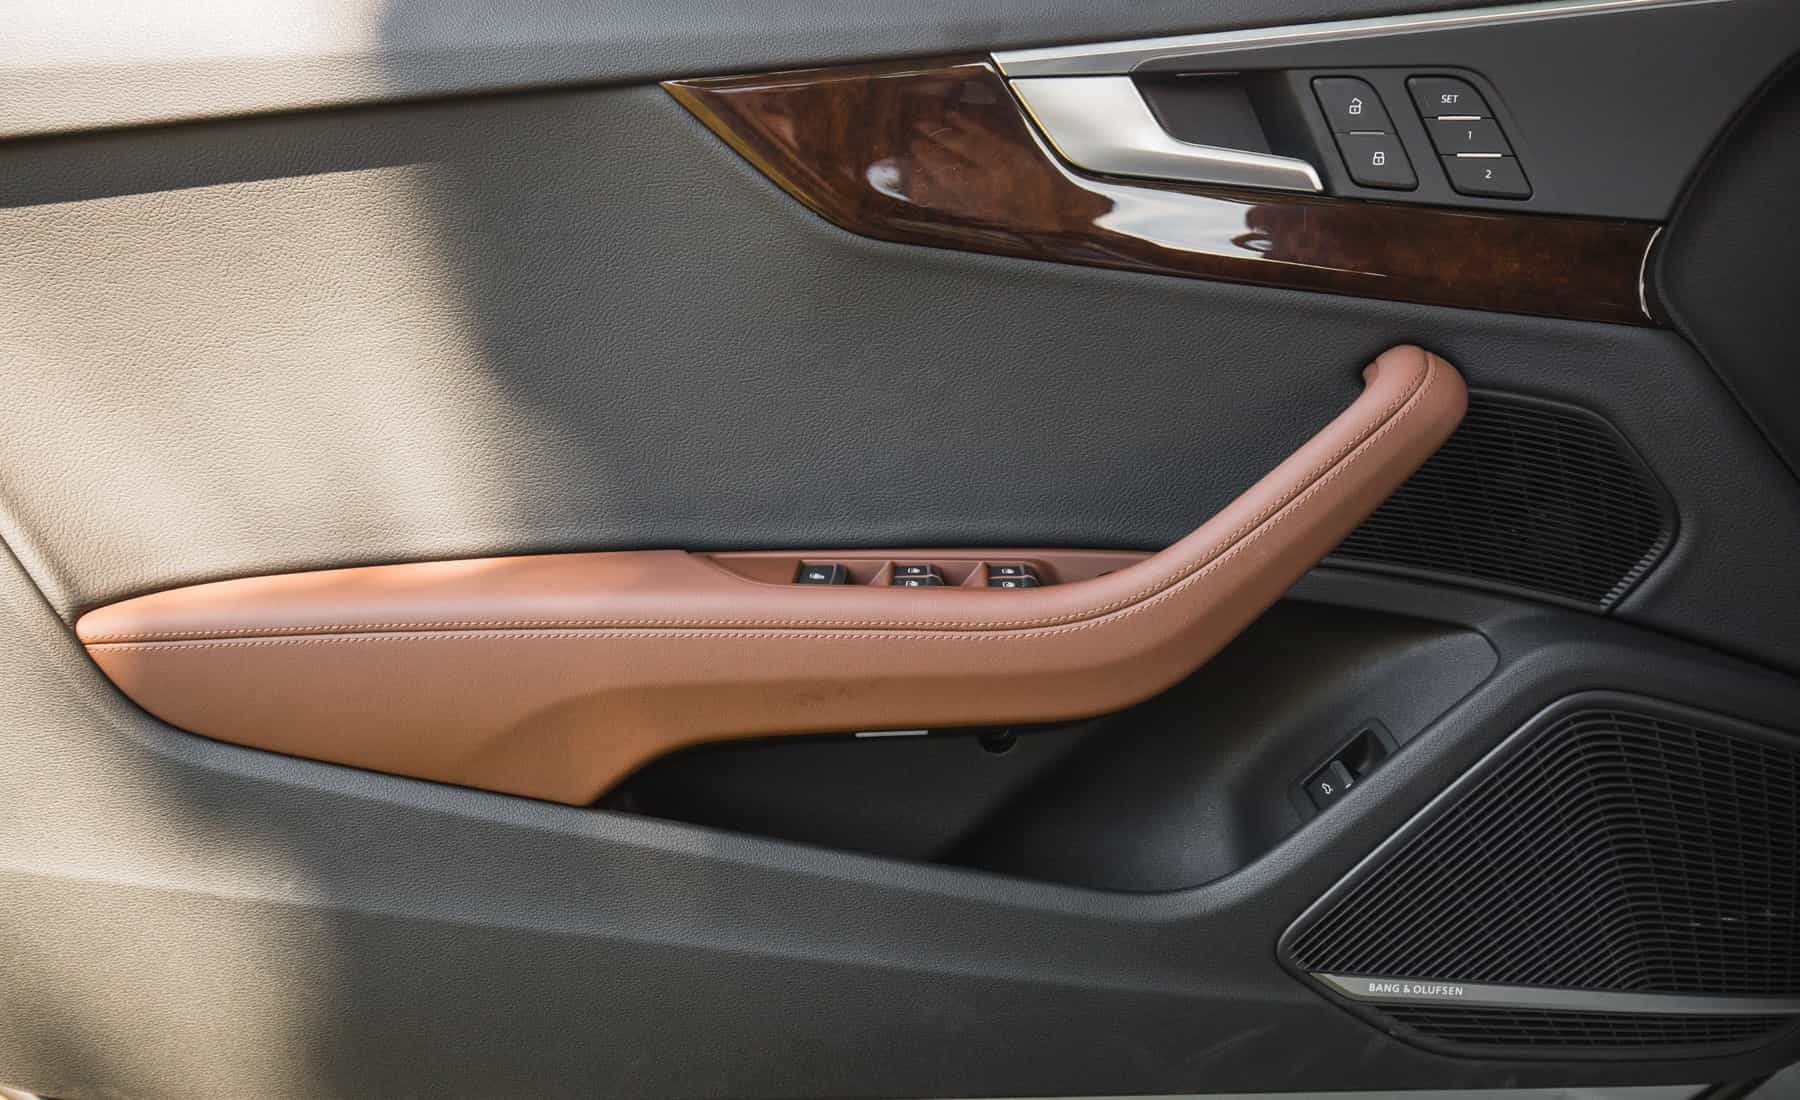 2018 Audi A5 Cabriolet Interior Door Trim Front (Photo 20 of 45)